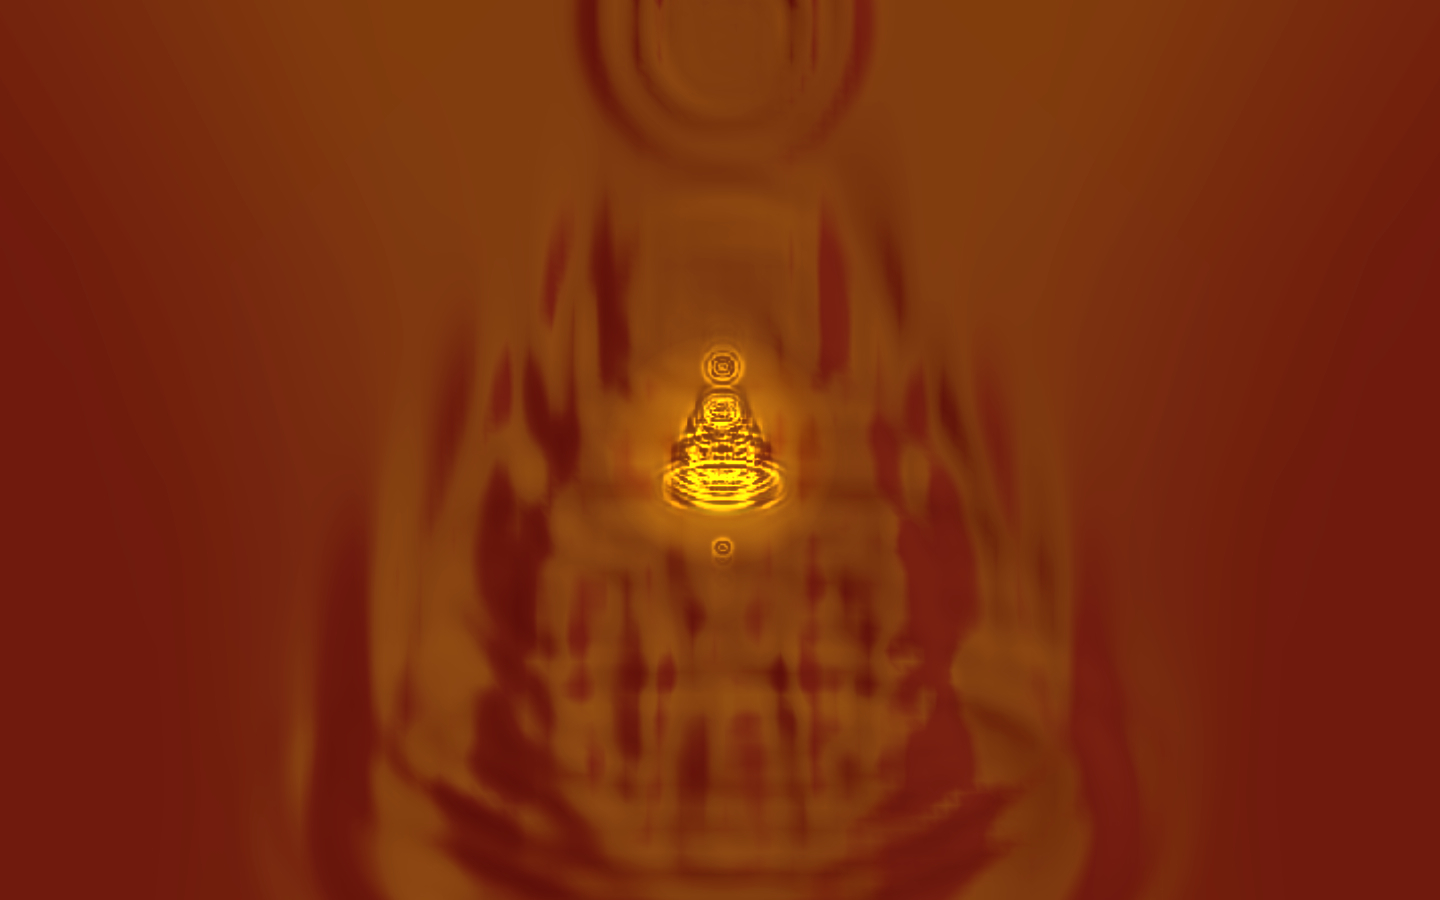 The 108 Harmonic Visions series: Inner Buddha 74 © David Hykes 2011 all rights reserved